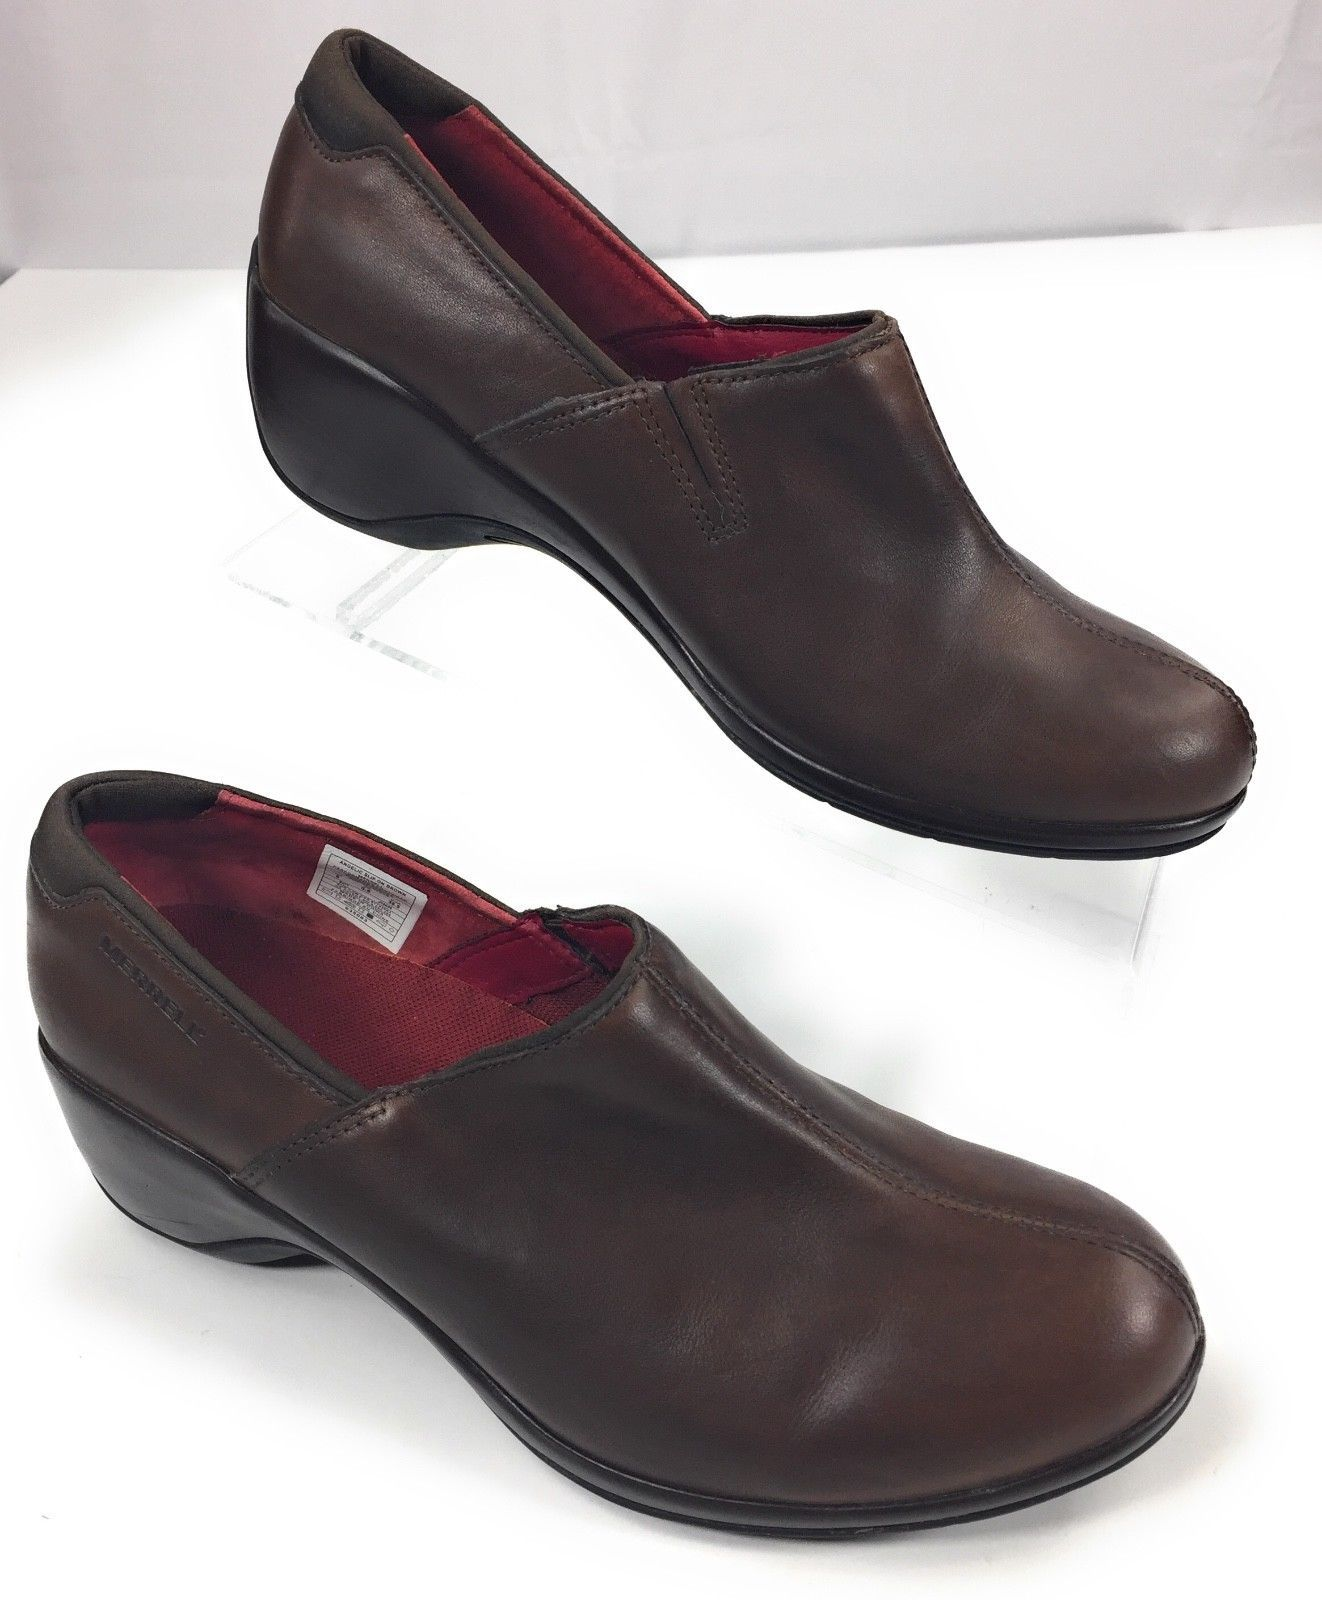 Merrell Angelic Slip On Brown Leather Loafer Wedge Shoes Women's 8